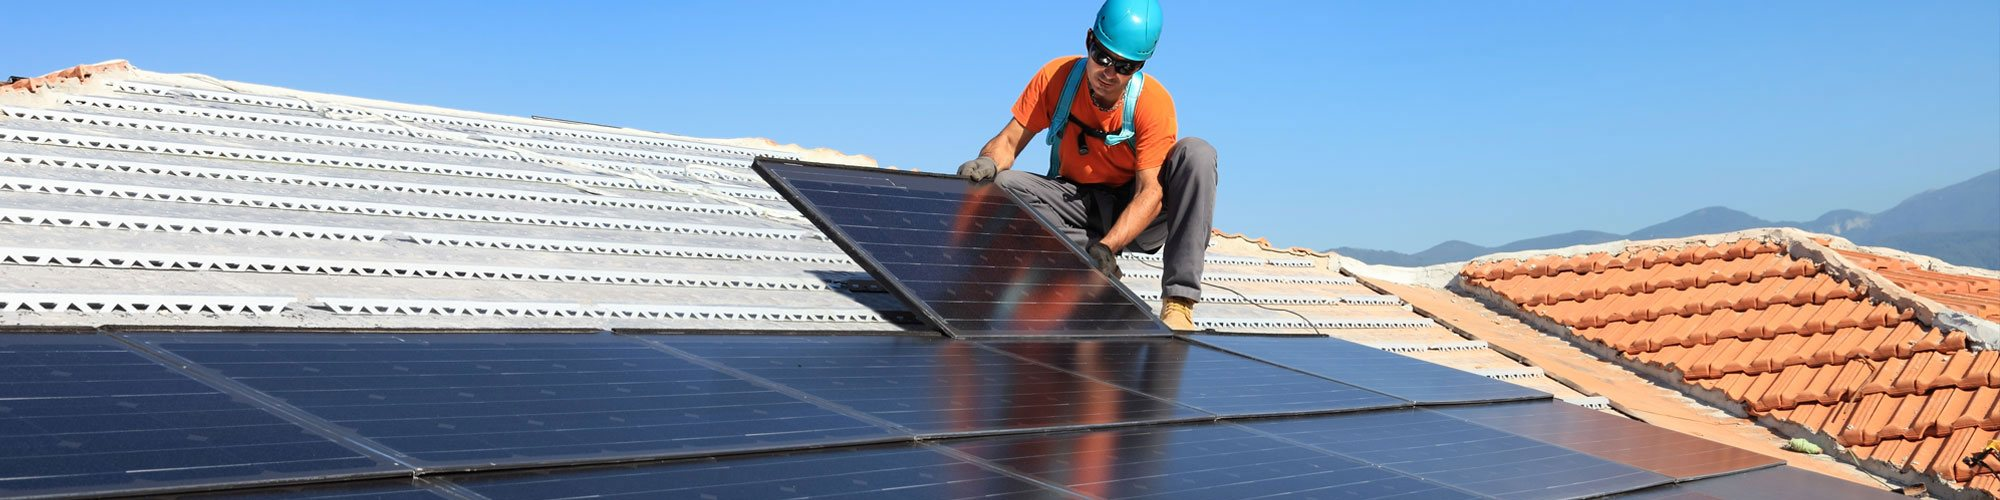 WE INSTALL SOLAR PANELS FOR BOTH DOMESTIC & COMMERCIAL CLIENTS